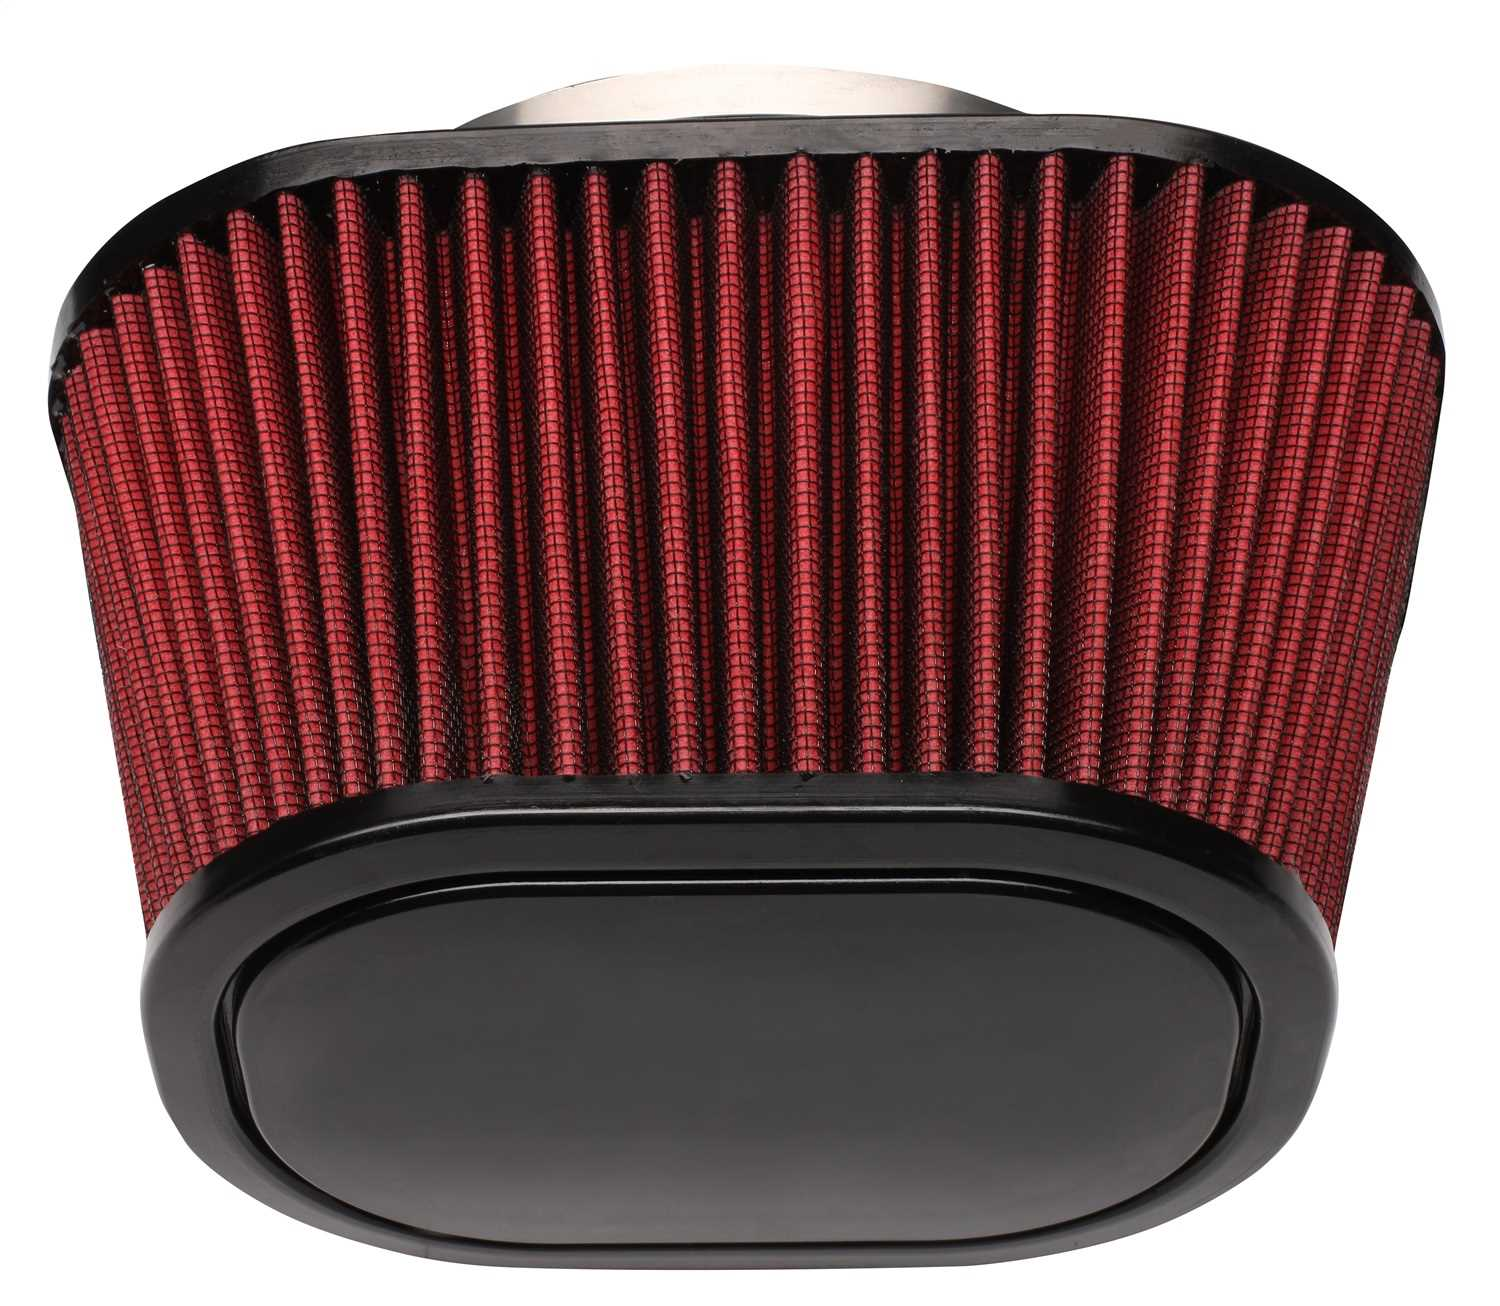 88000 Edge Products Jammer Filter Wrap Covers